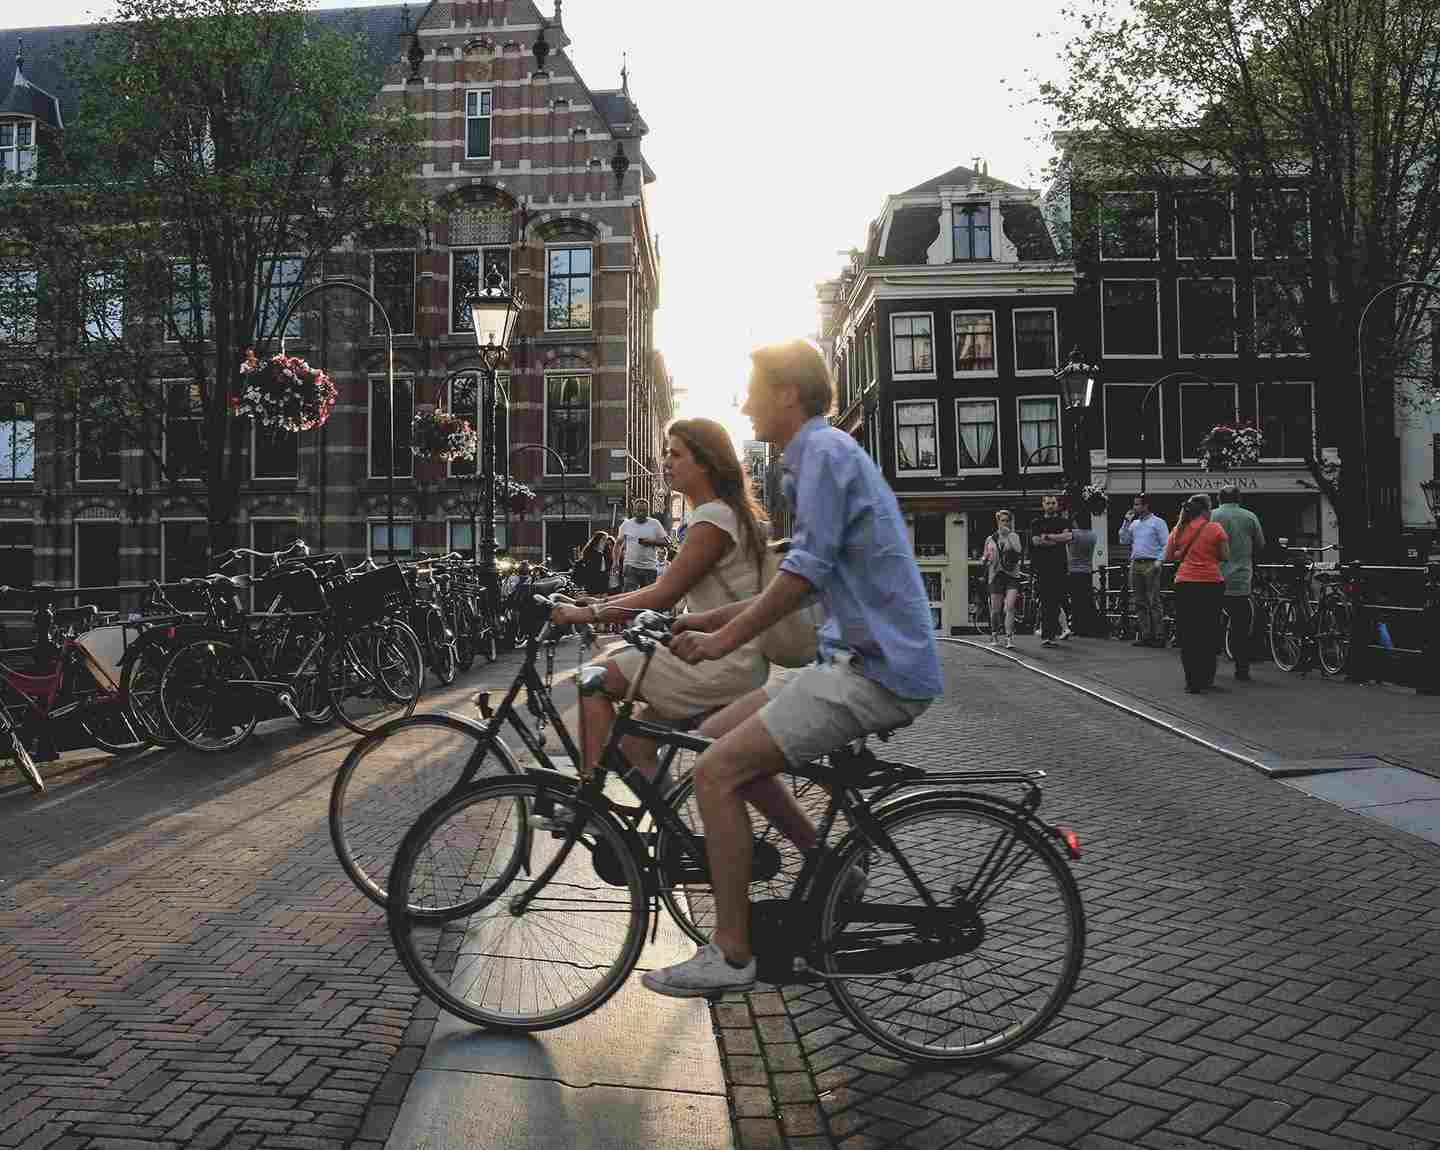 A couple riding a bicycle in Jordaan